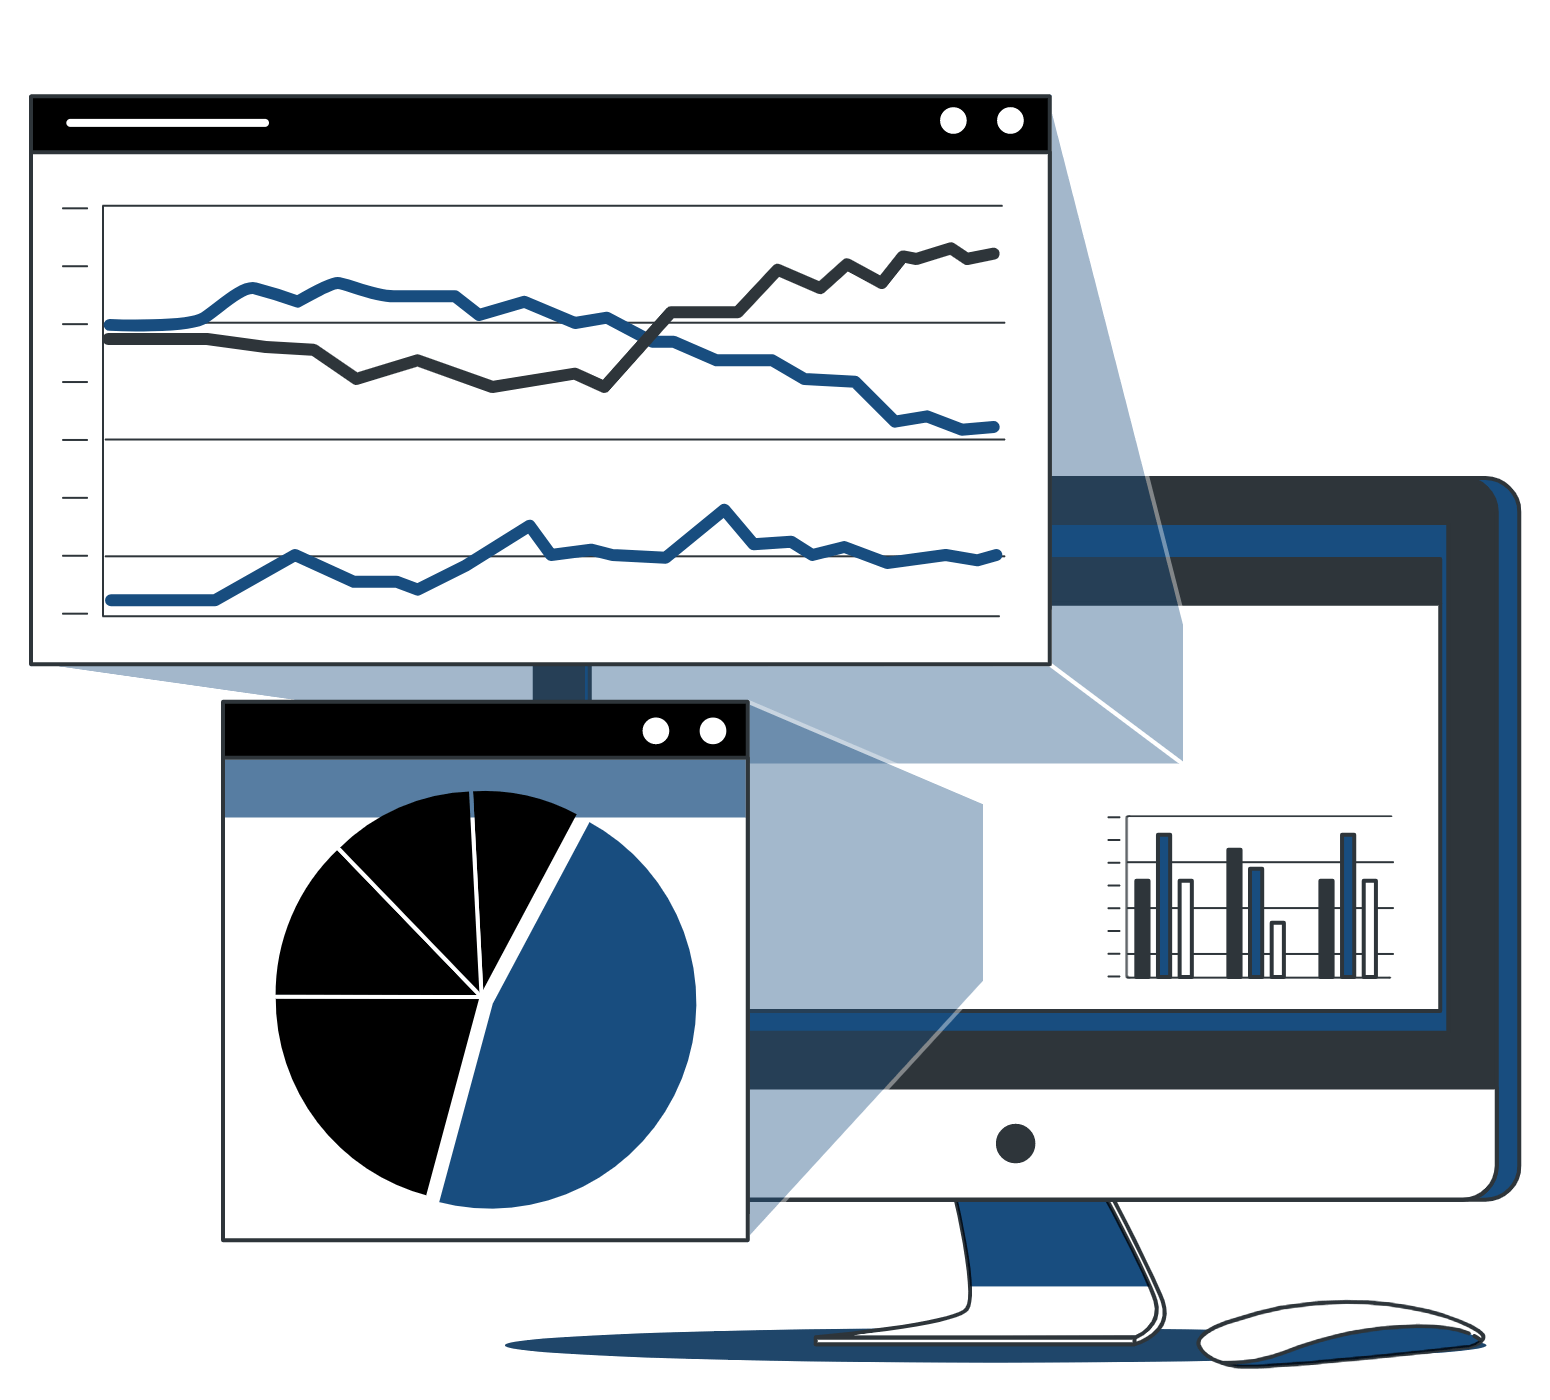 Your computer showing you all the business intelligence you need to succeed